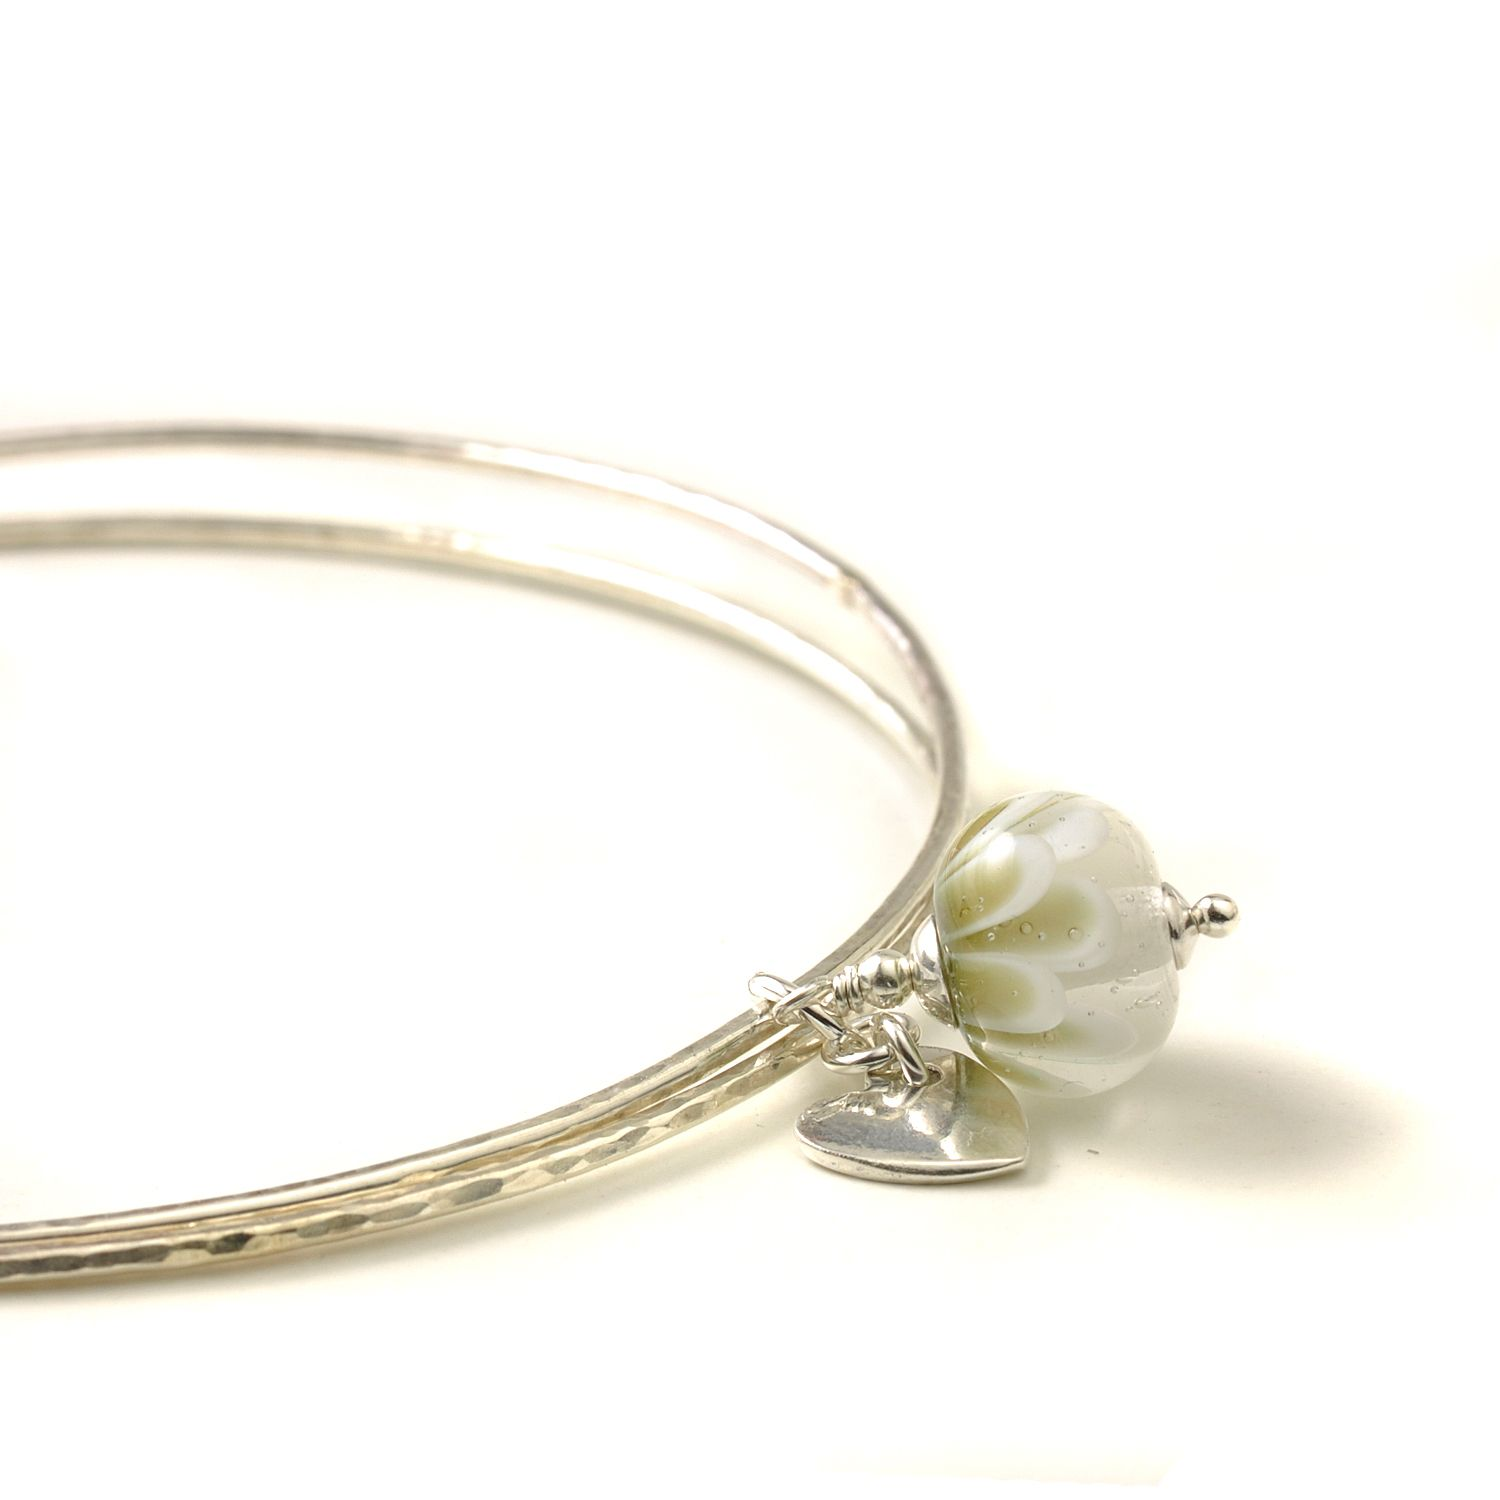 Shop Lampwork Glass Bracelets and Bangles